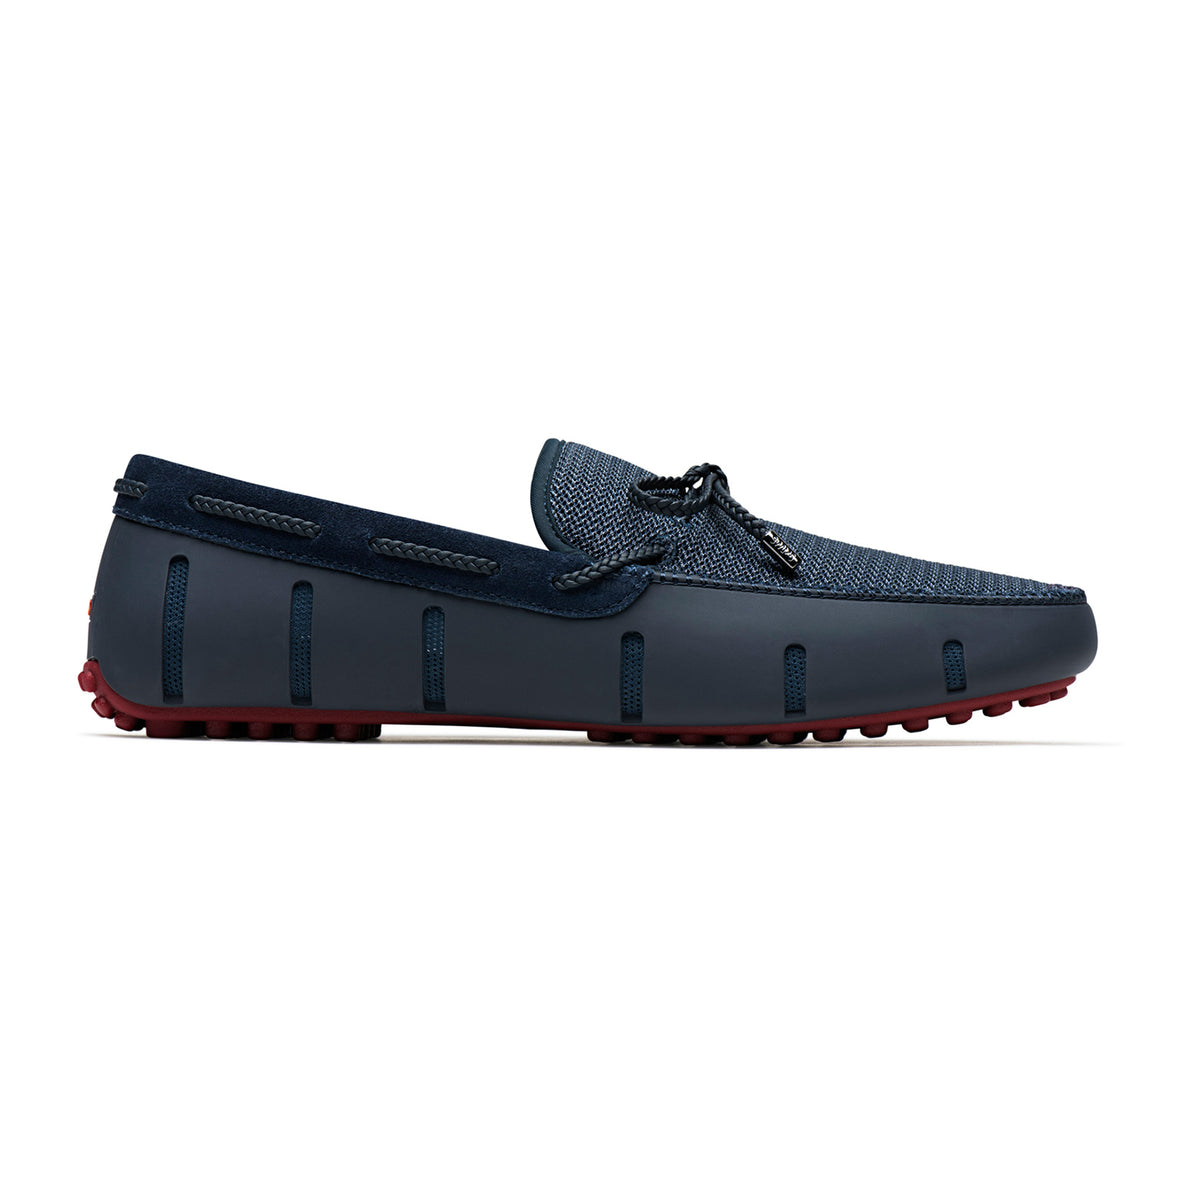 Braided Lace Lux Loafer Driver - background::white,variant::Navy/Deep Red